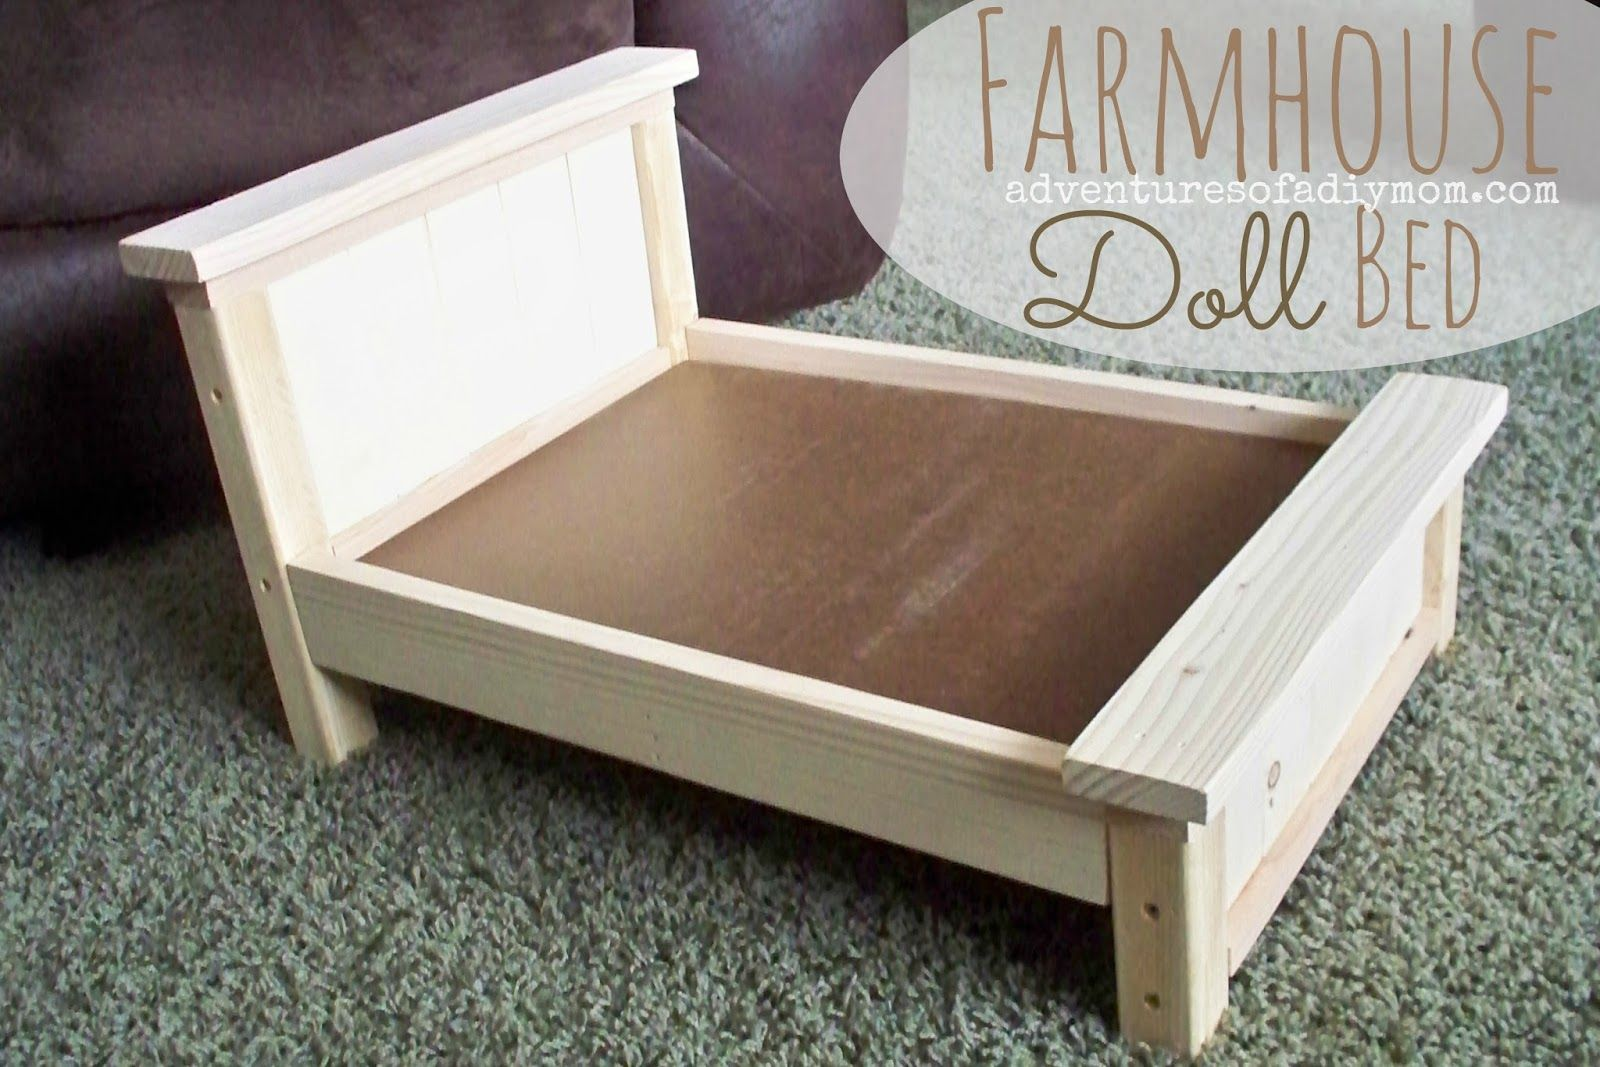 18 doll sofa diy leather manufacturers blackburn farmhouse bed for american girl dolls beds